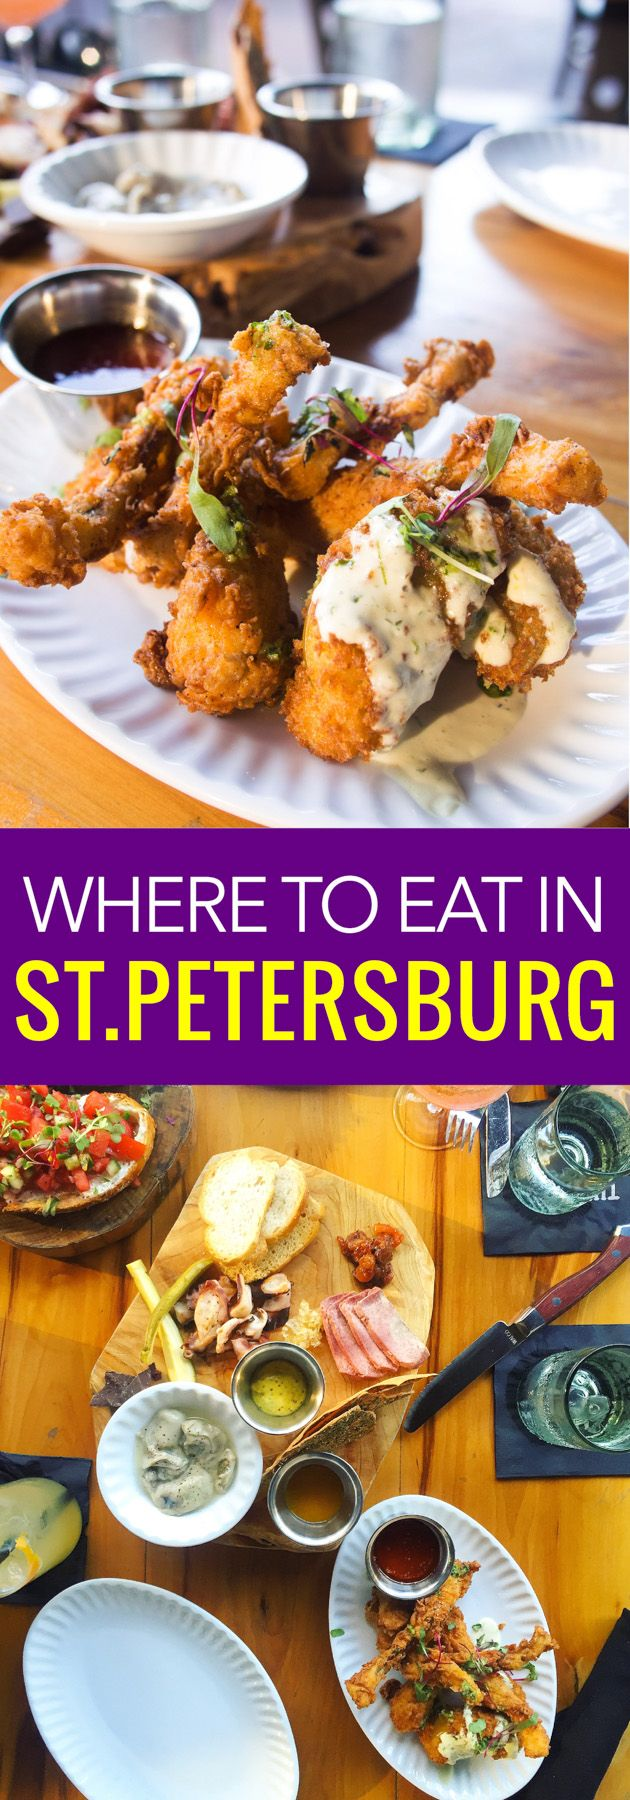 17 best images about tampa to do on pinterest walking for Craft beer and food